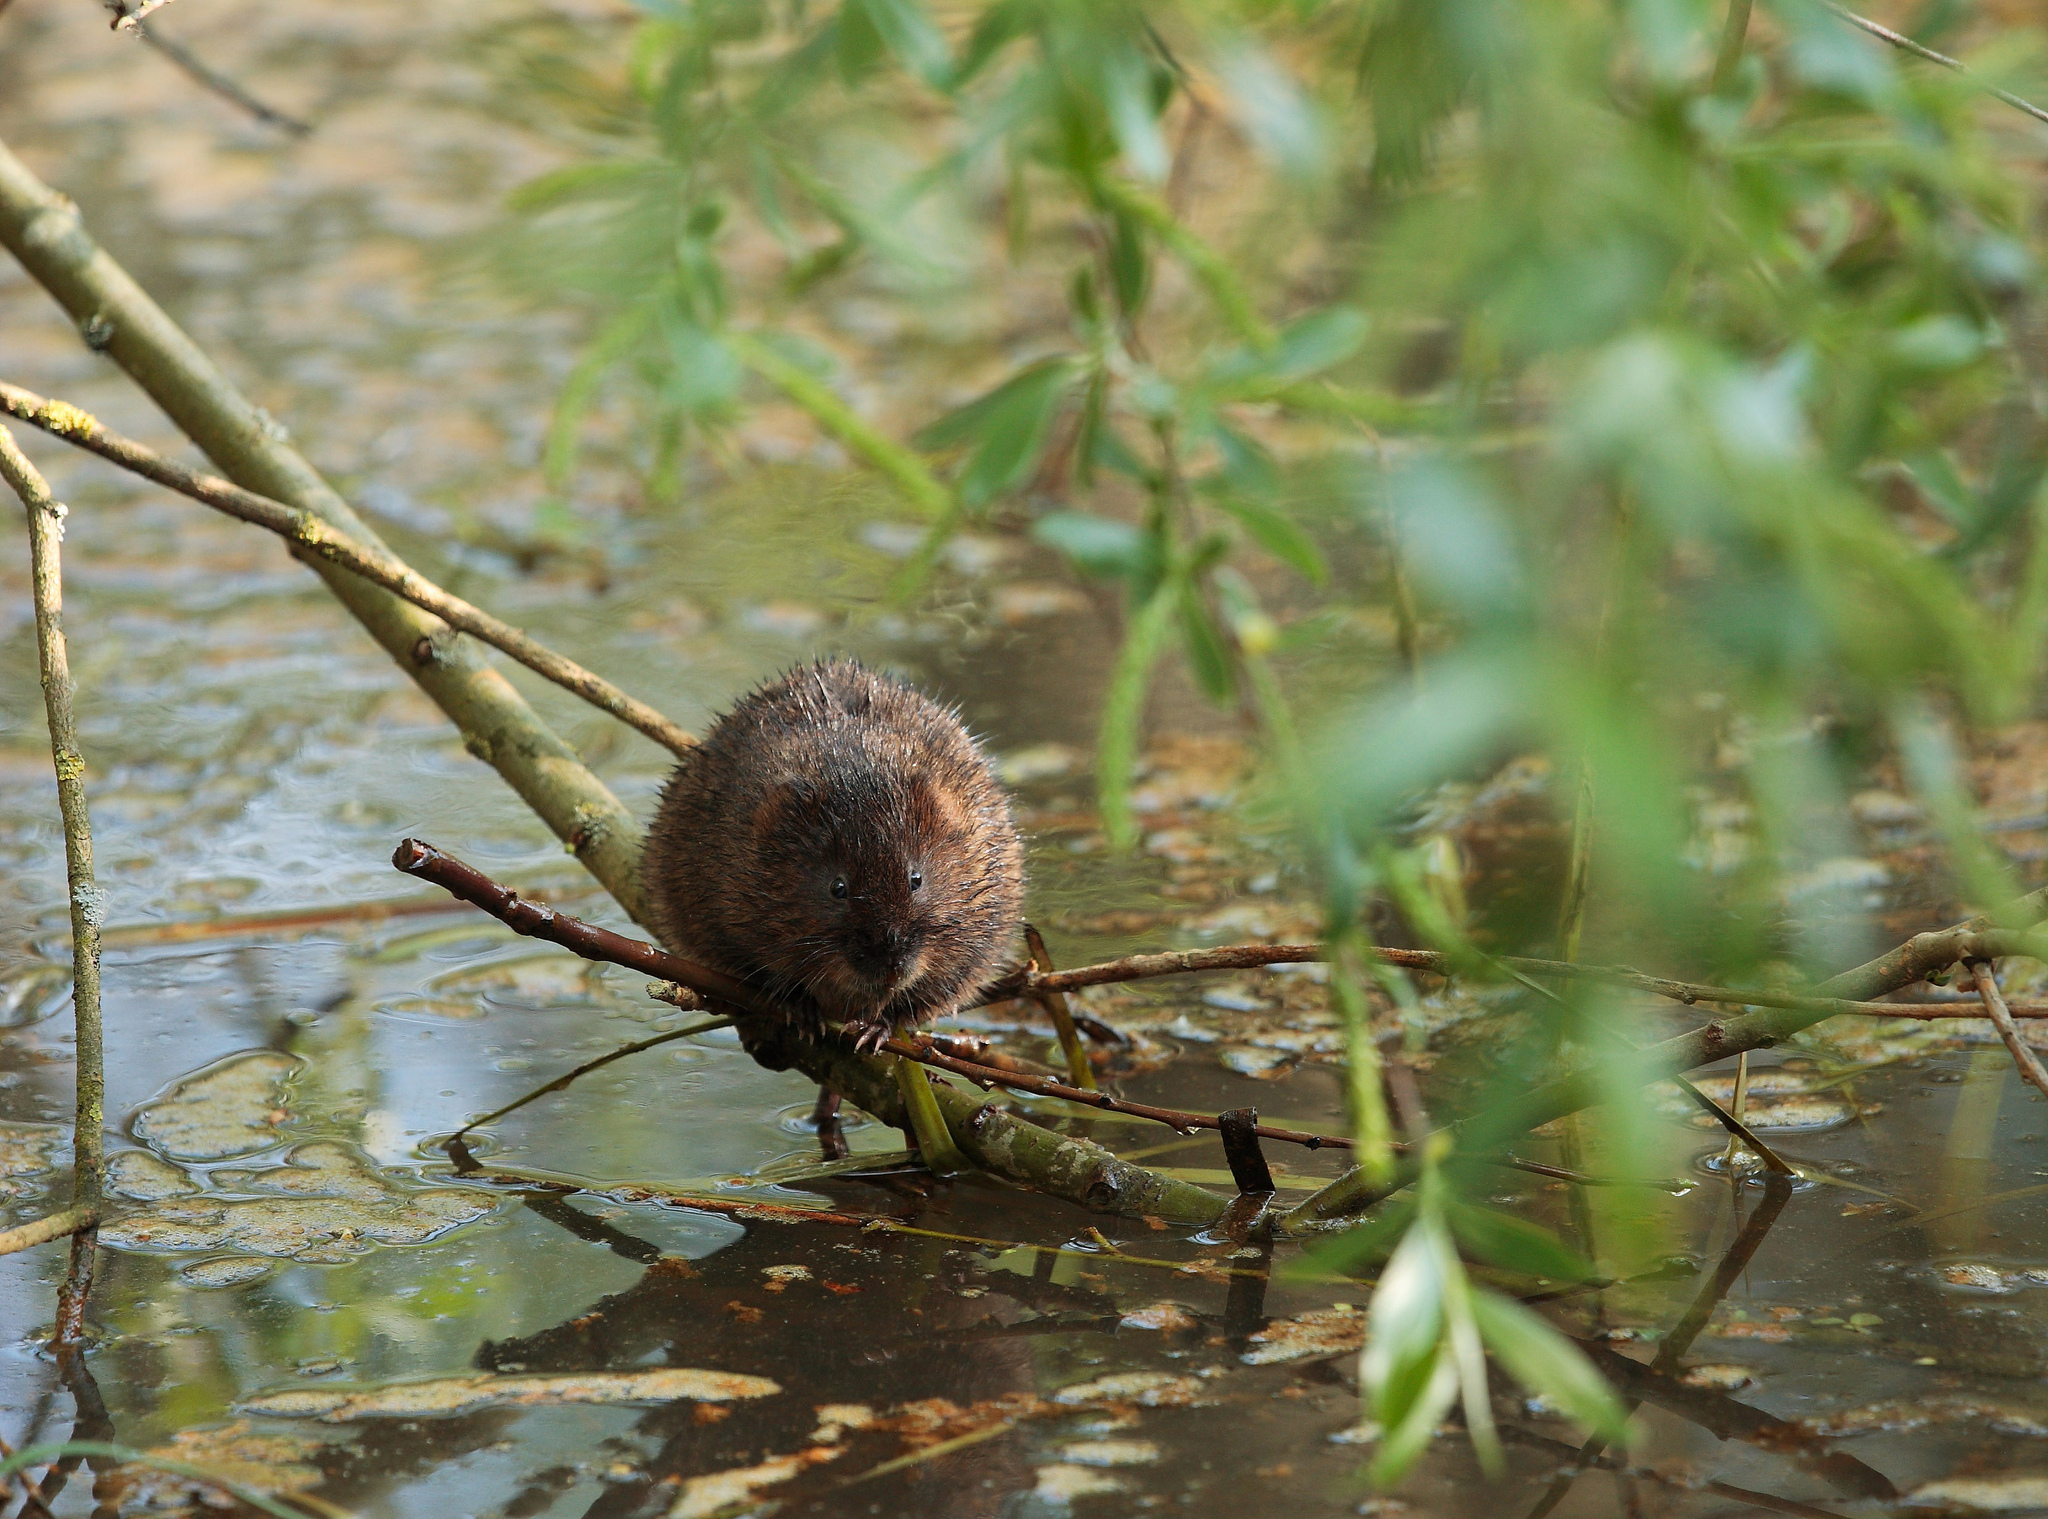 Protecting Water Voles